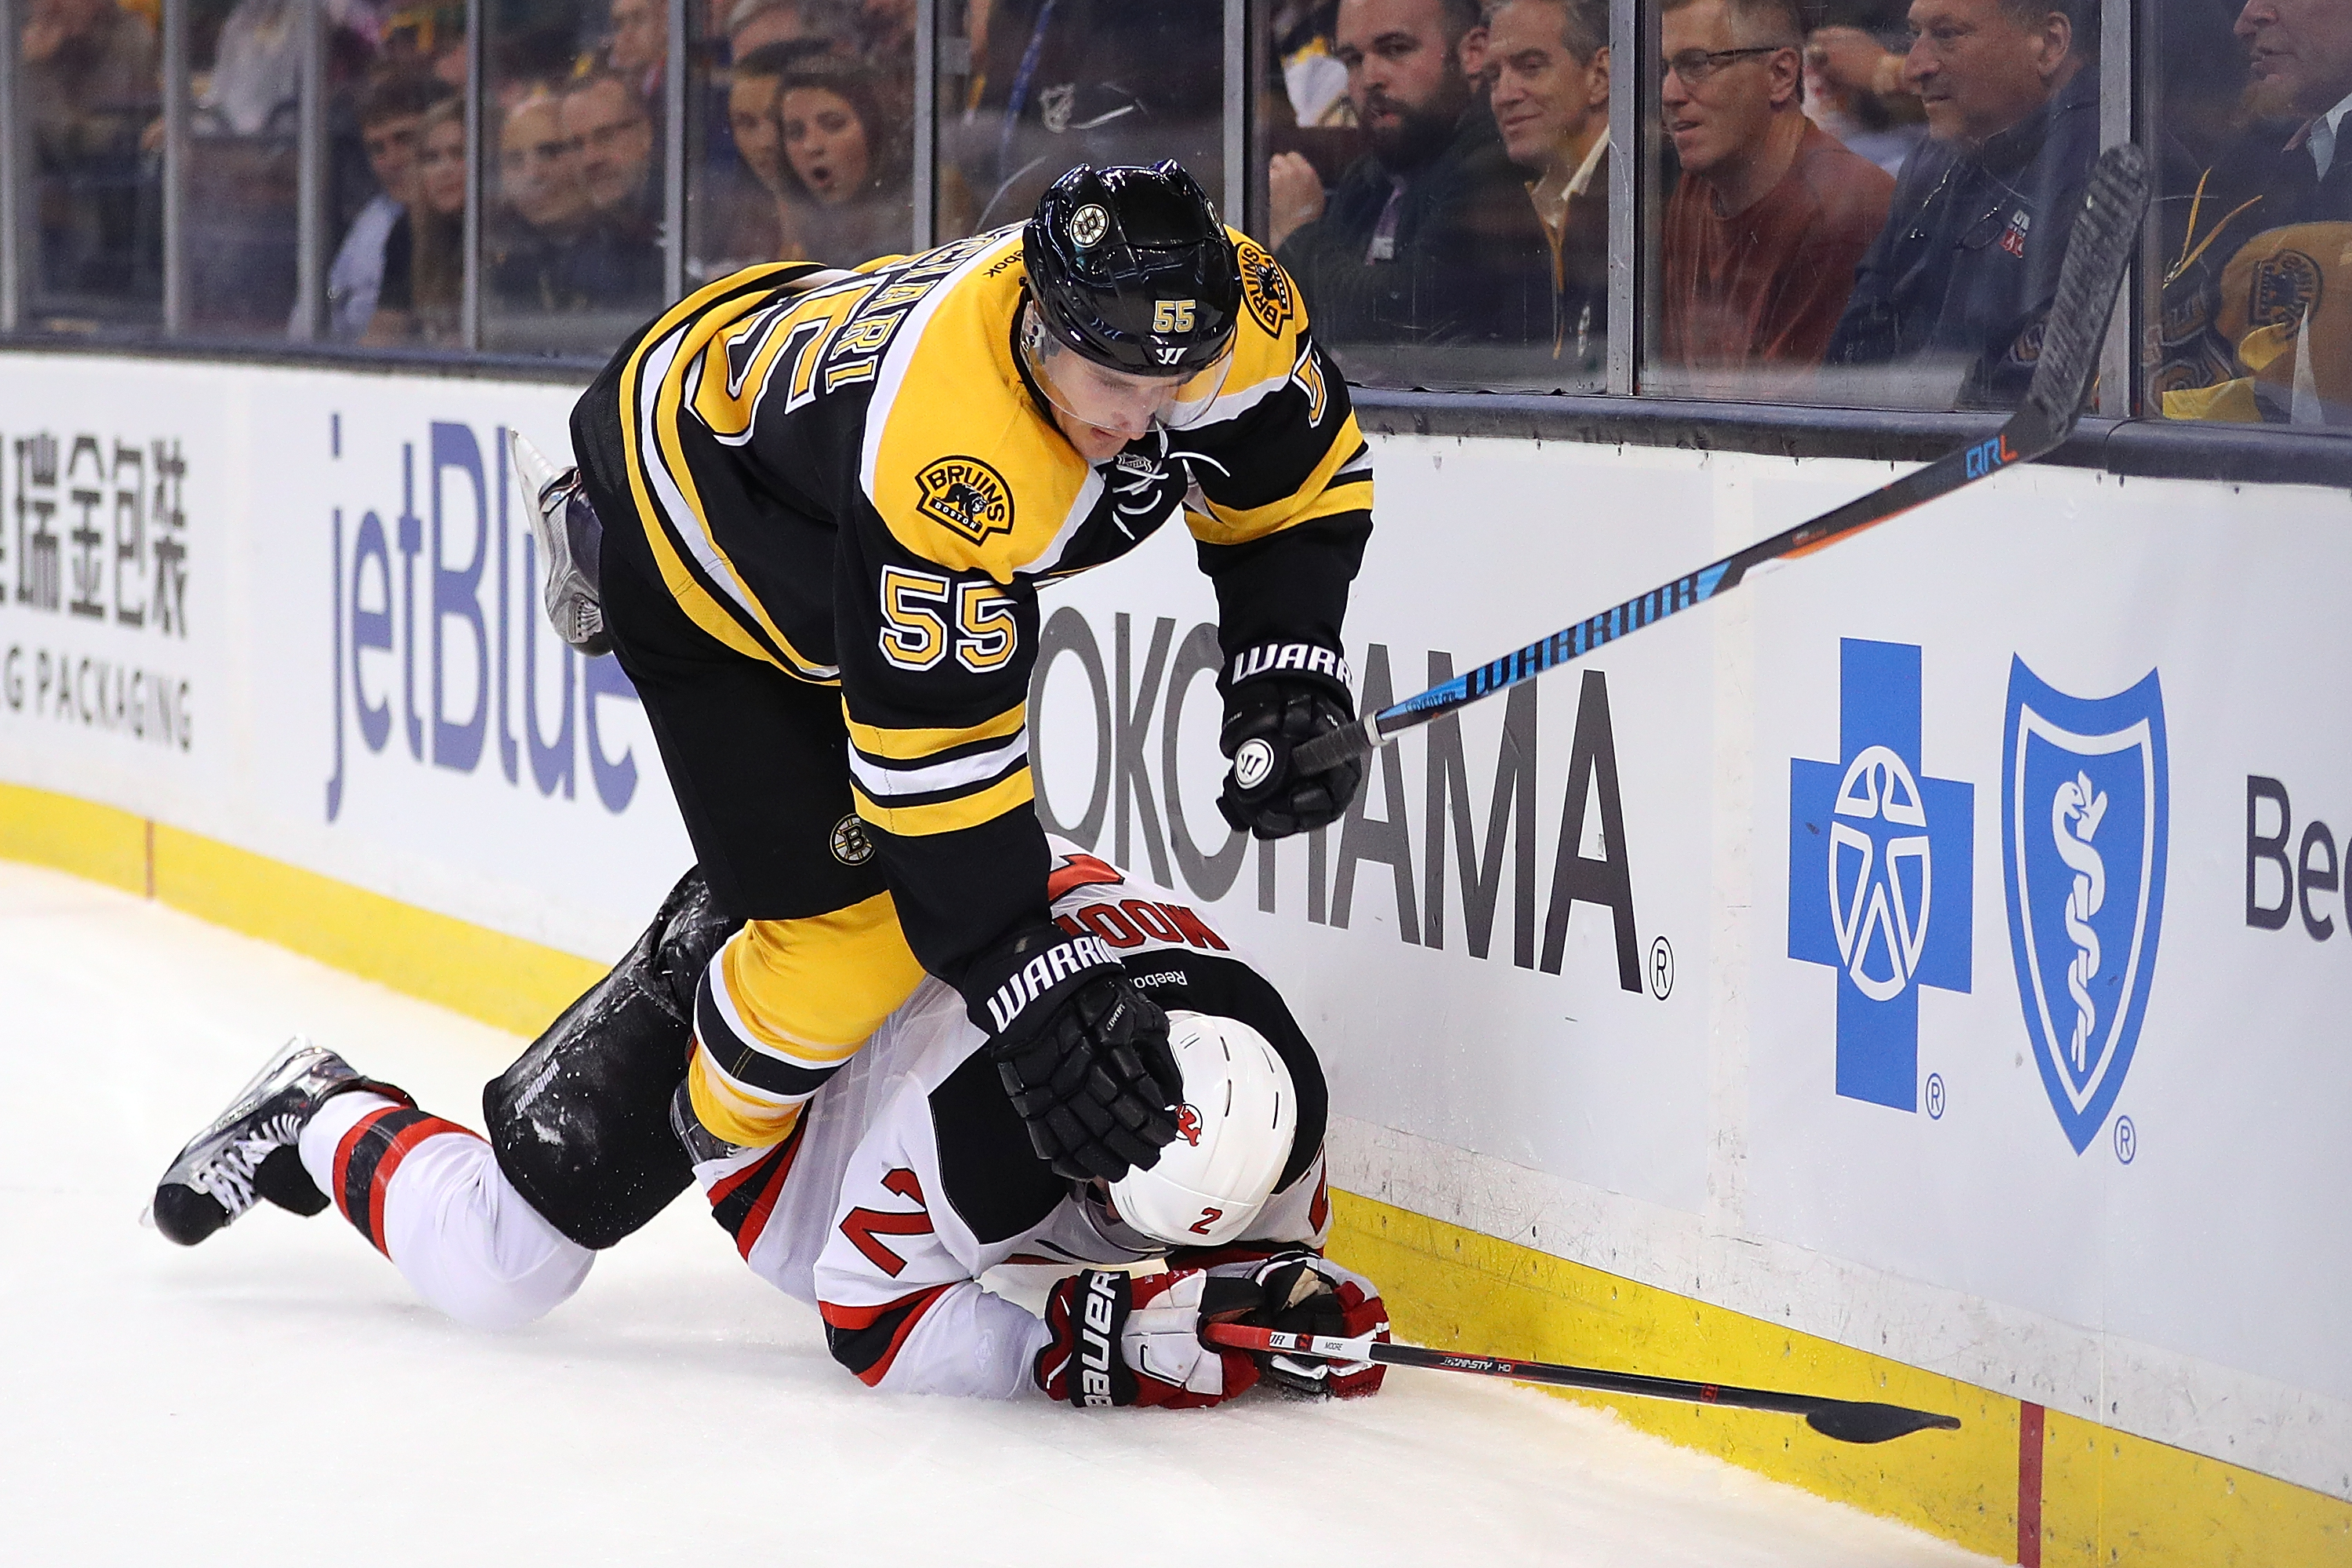 Boston Bruins News: Noel Acciari signing is a steal for ...Bruins News